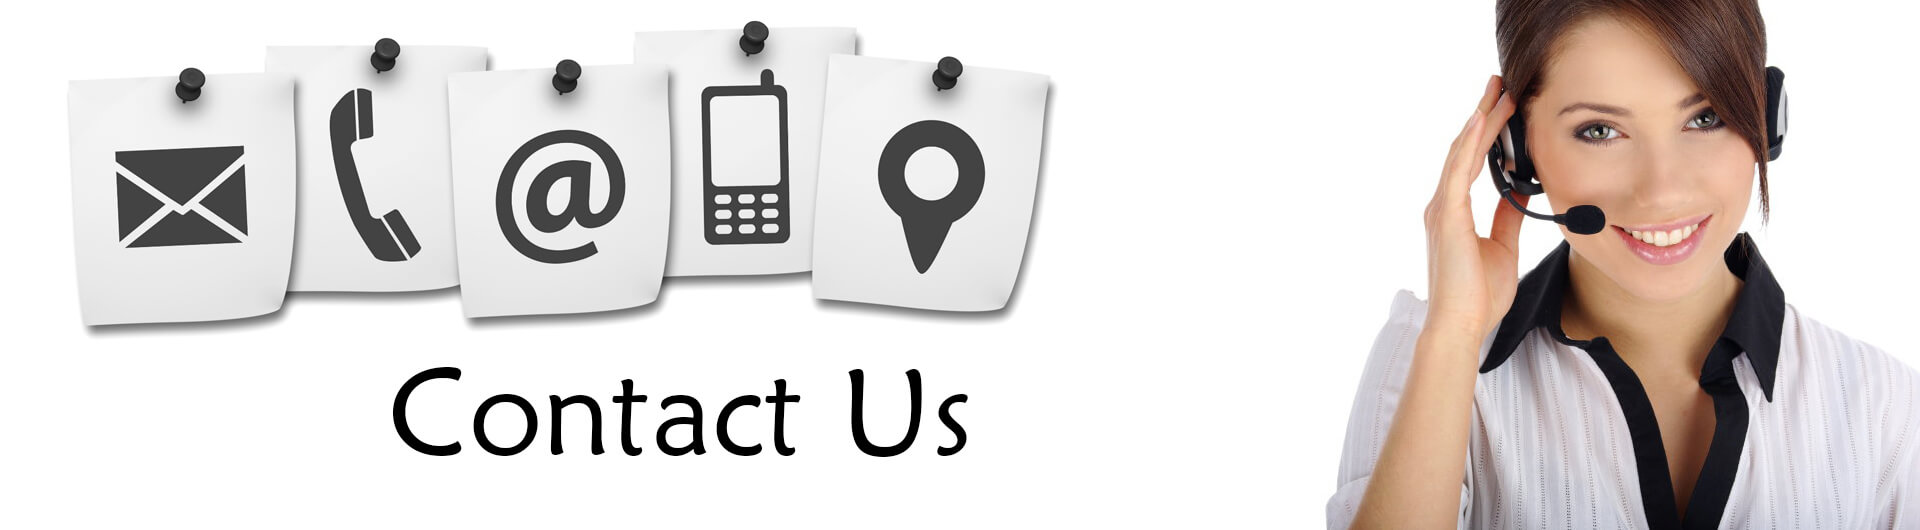 Contact Us Banner - Icons of Contact Methods, Phone Operator Standing By on Right Side